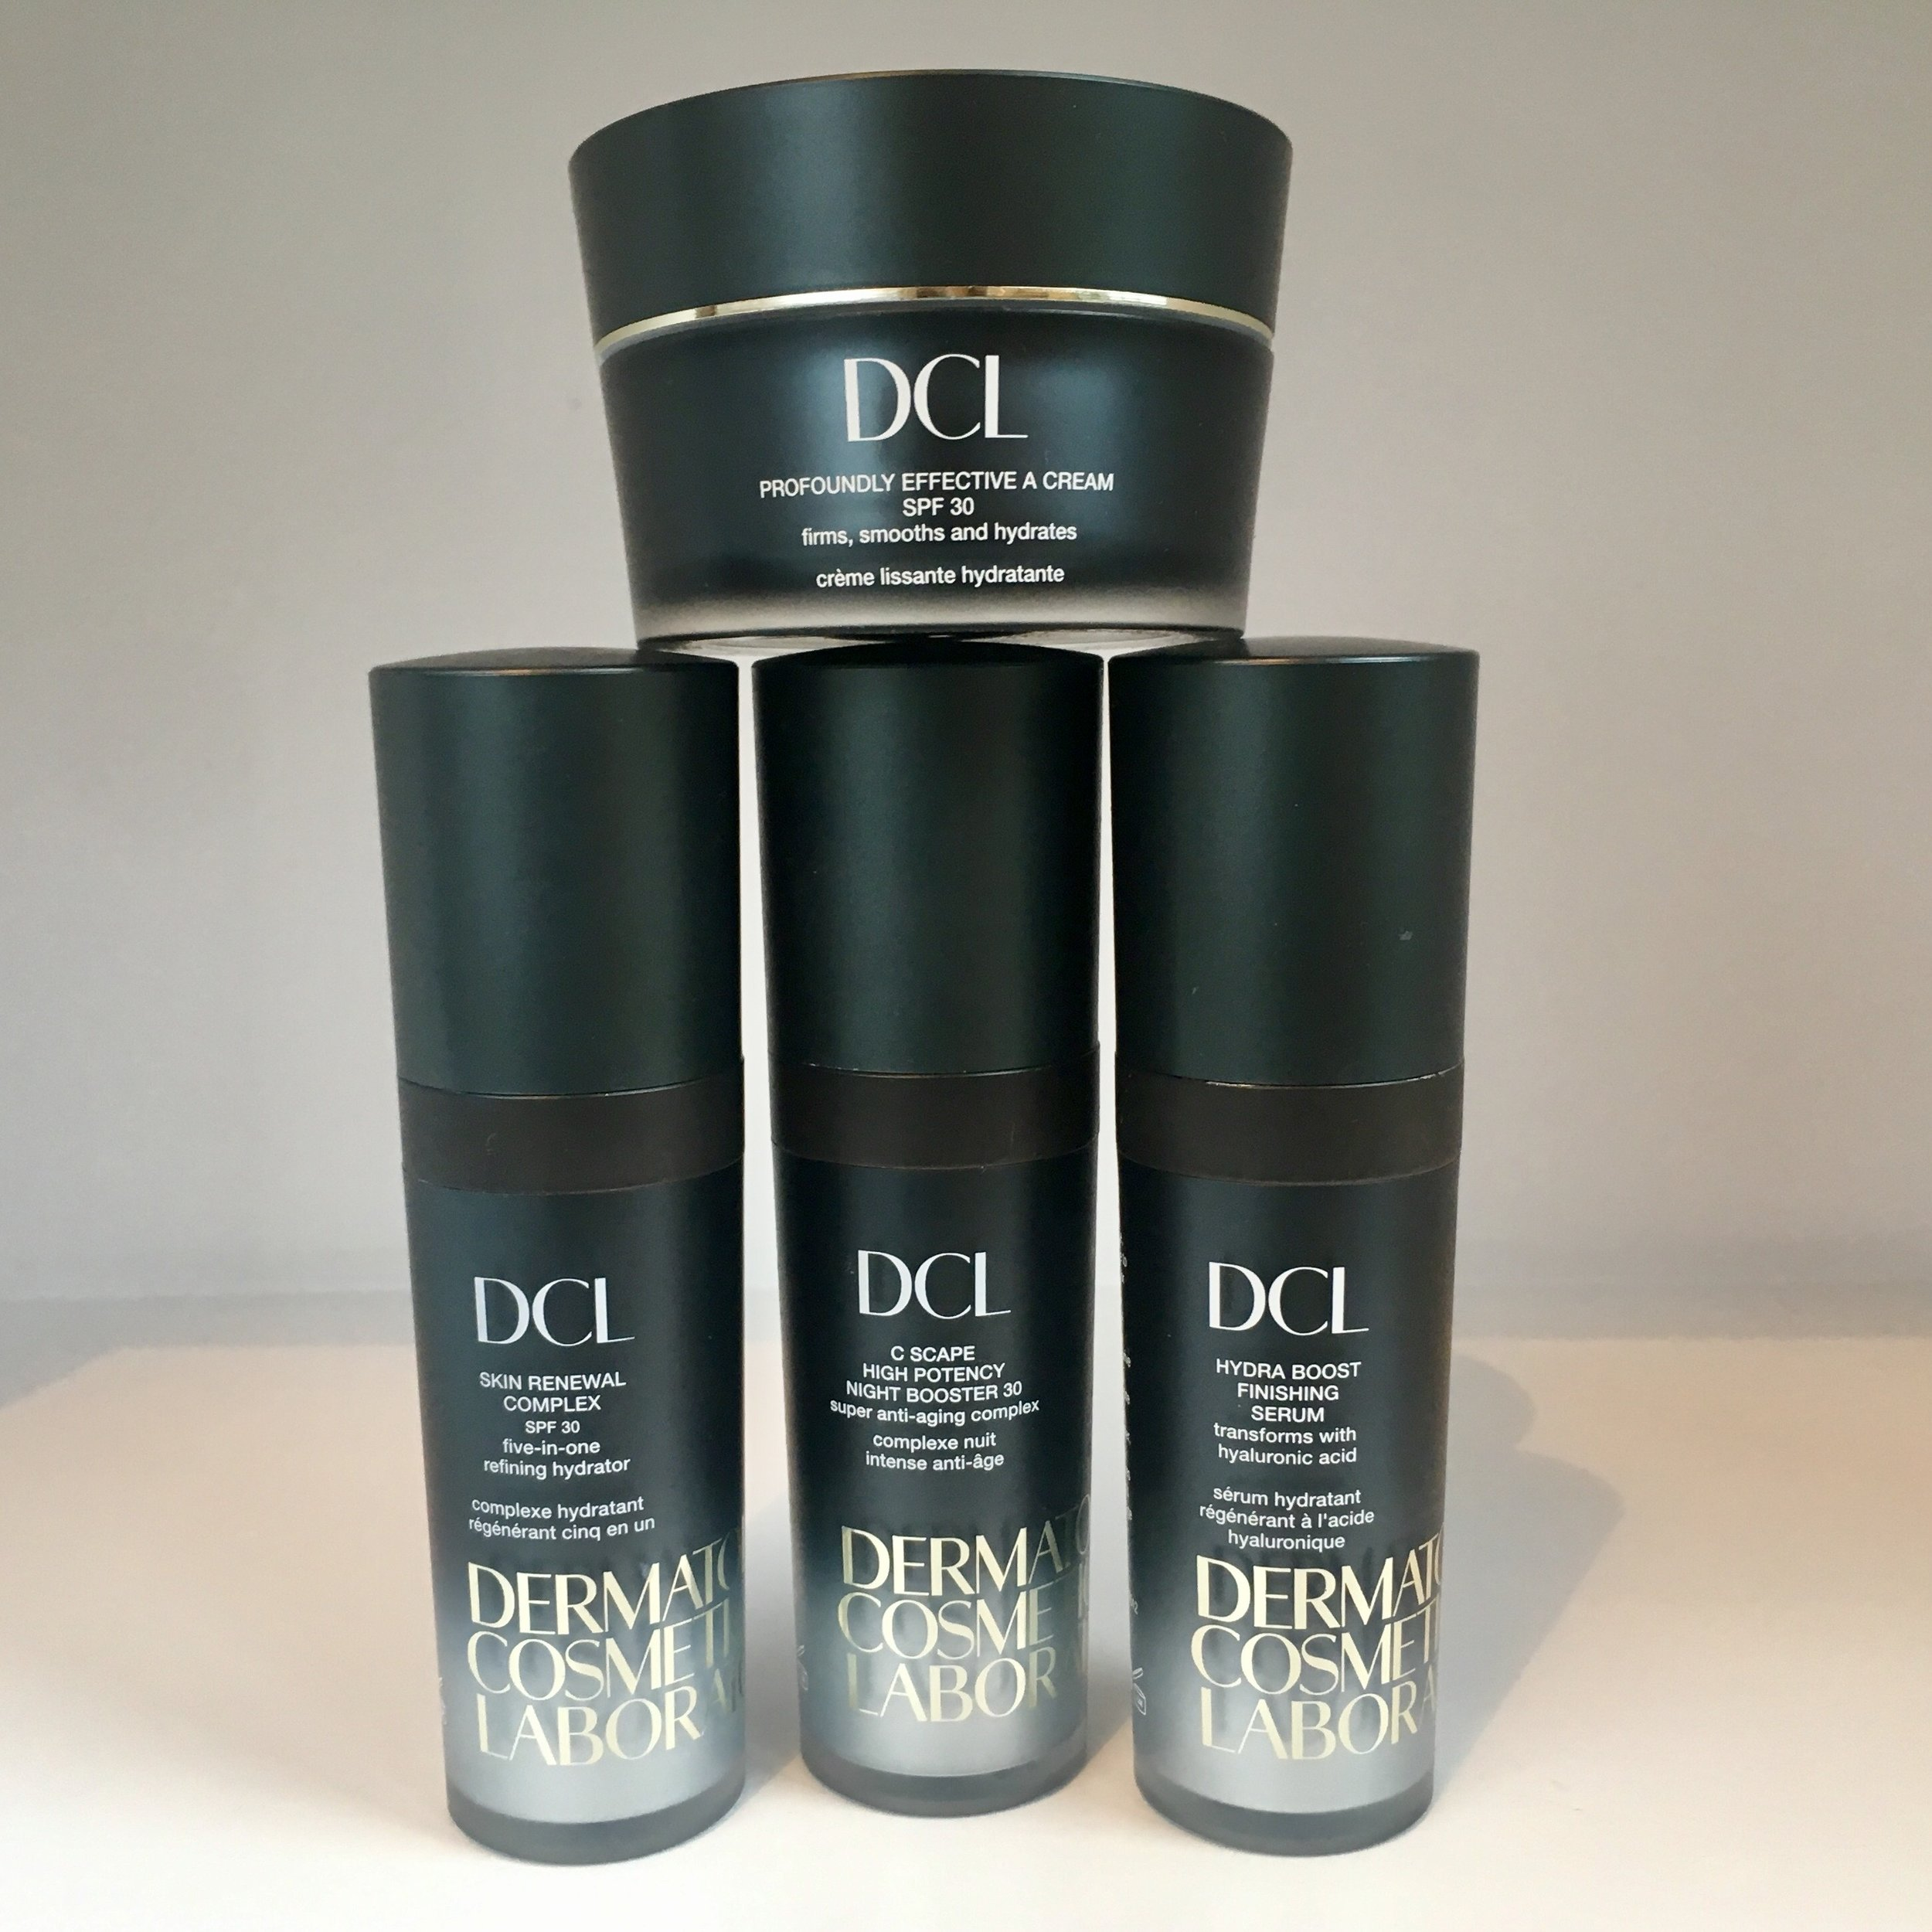 DCL skincare: great products with serious ingredients